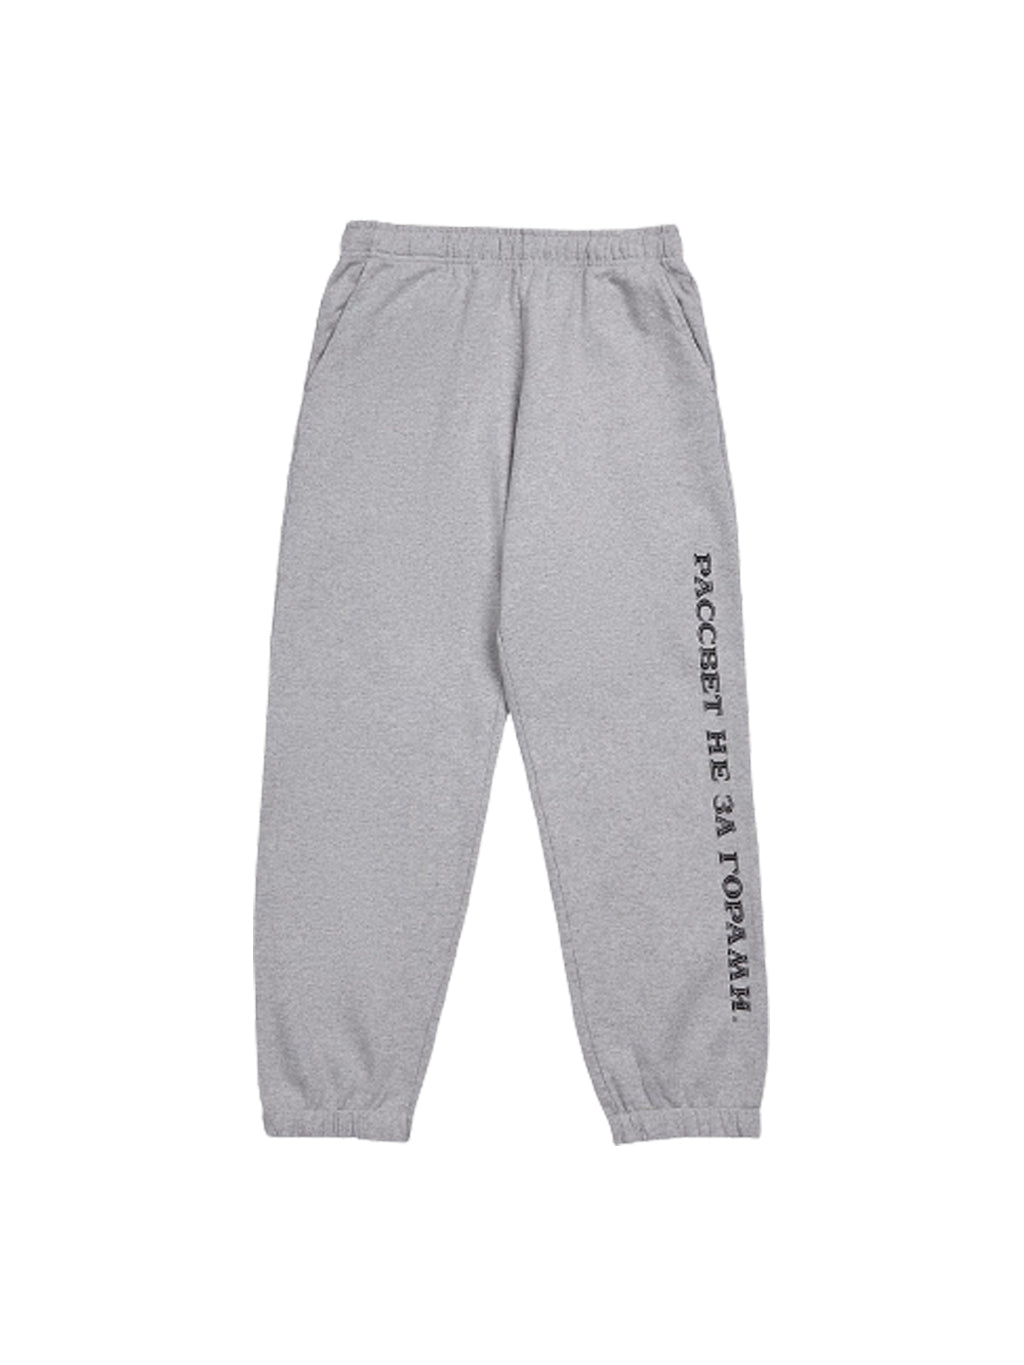 Red or Grey Side Print Sweatpants